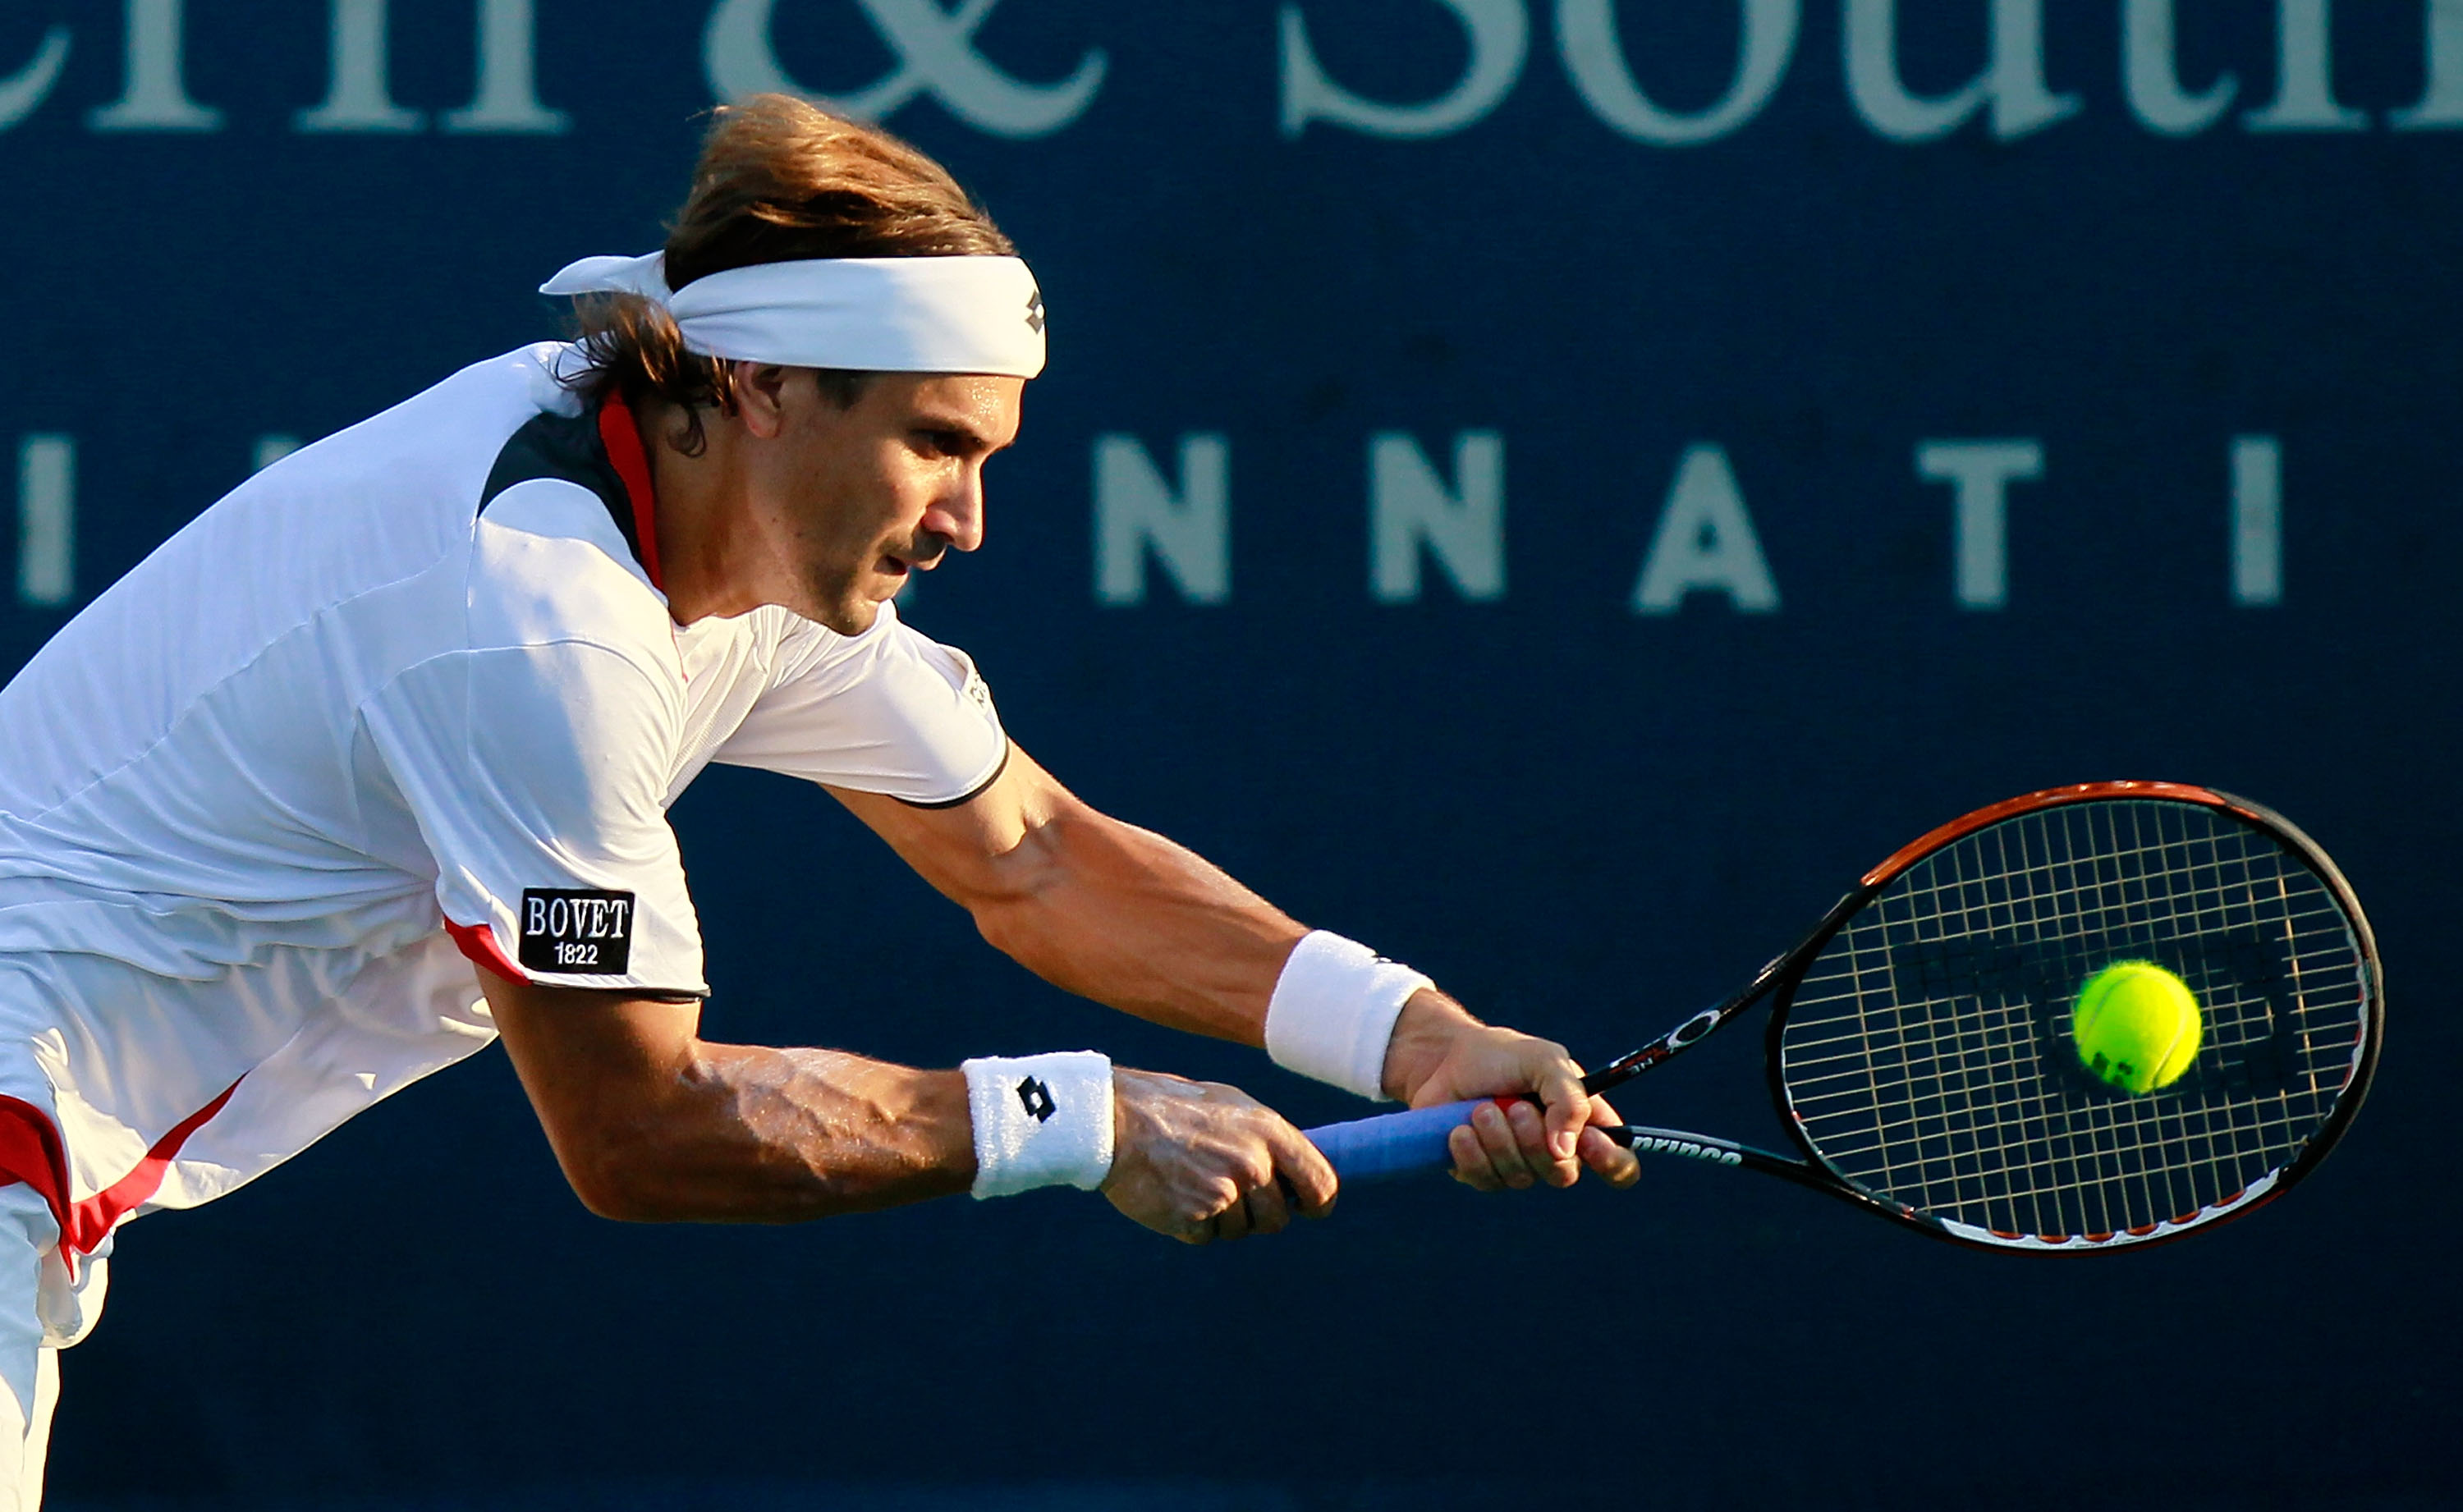 CINCINNATI - AUGUST 19:  David Ferrer of Spain returns a backhand to Nikolay Davydenko of Russia during Day 4 of the Western & Southern Financial Group Masters at the Lindner Family Tennis Center on August 19, 2010 in Cincinnati, Ohio.  (Photo by Kevin C.